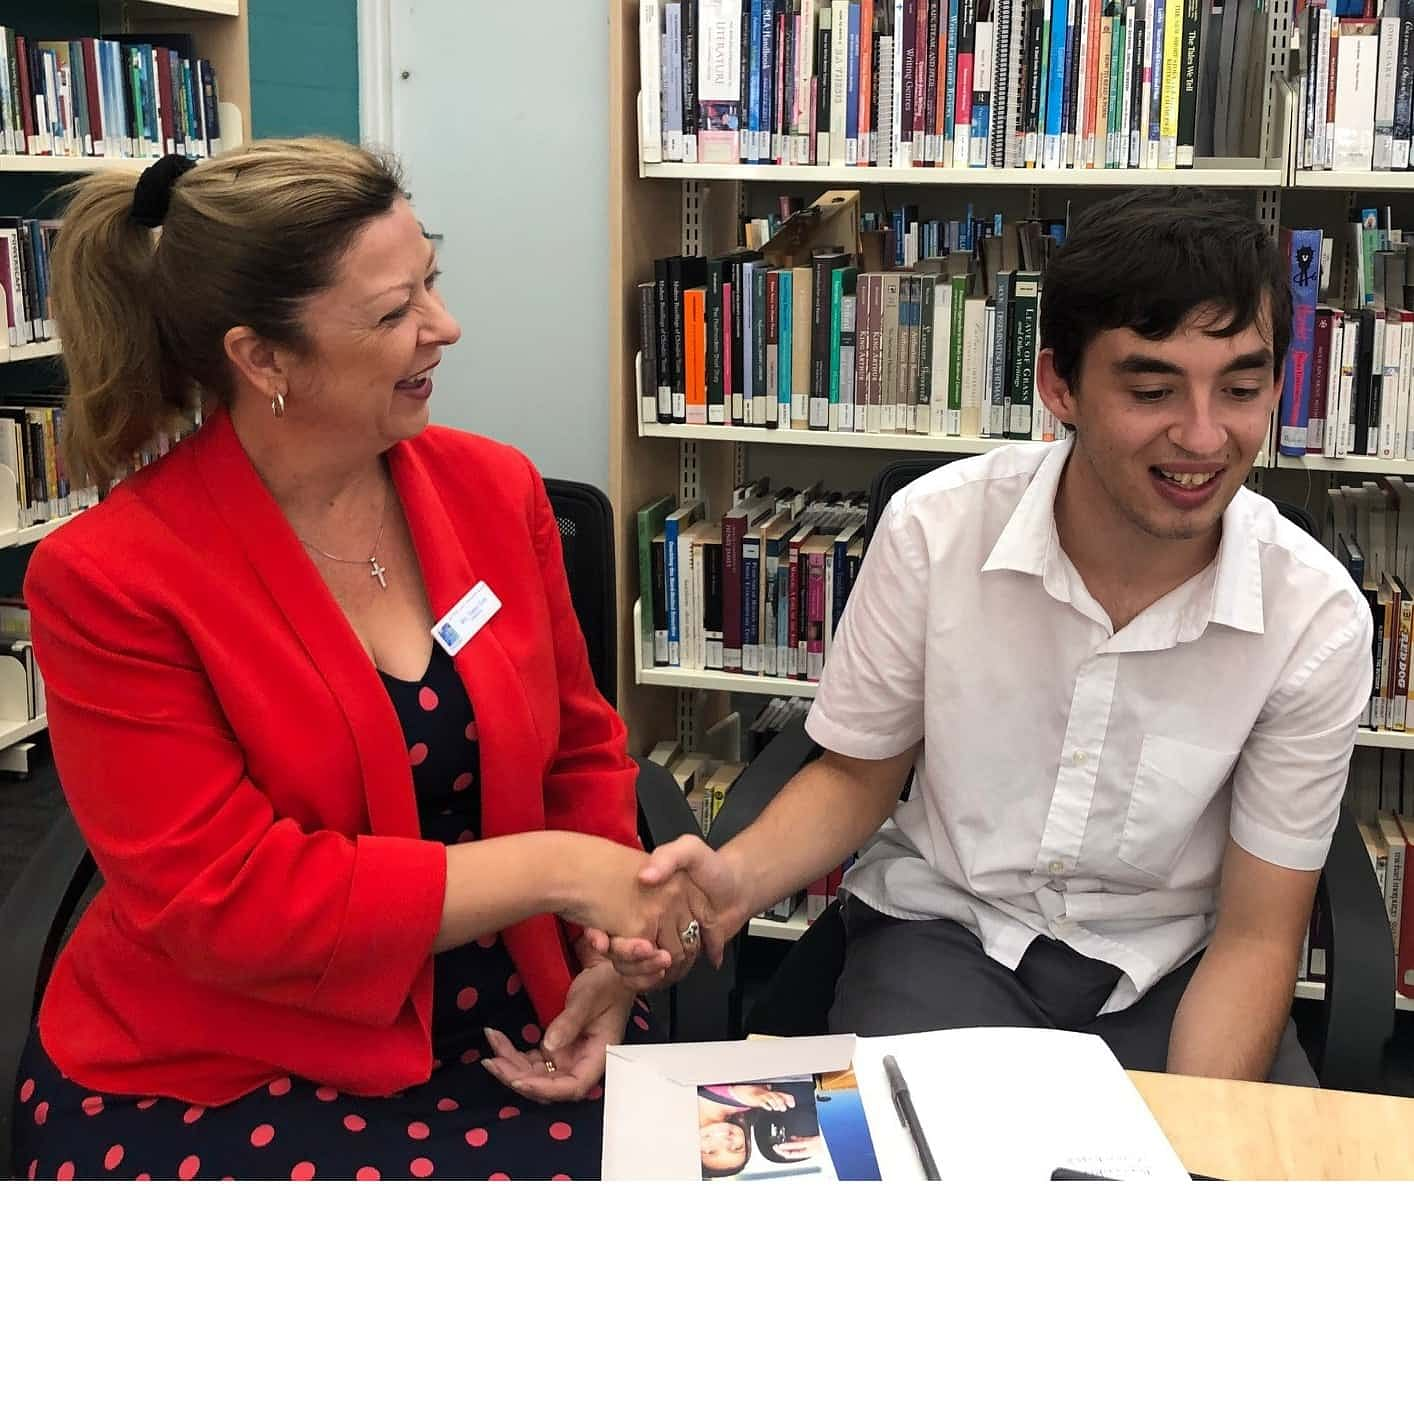 Sapphire Coast Anglican College Principal, Tracey Gray congratulates student Ben Cook for his achievements at Bega Library.